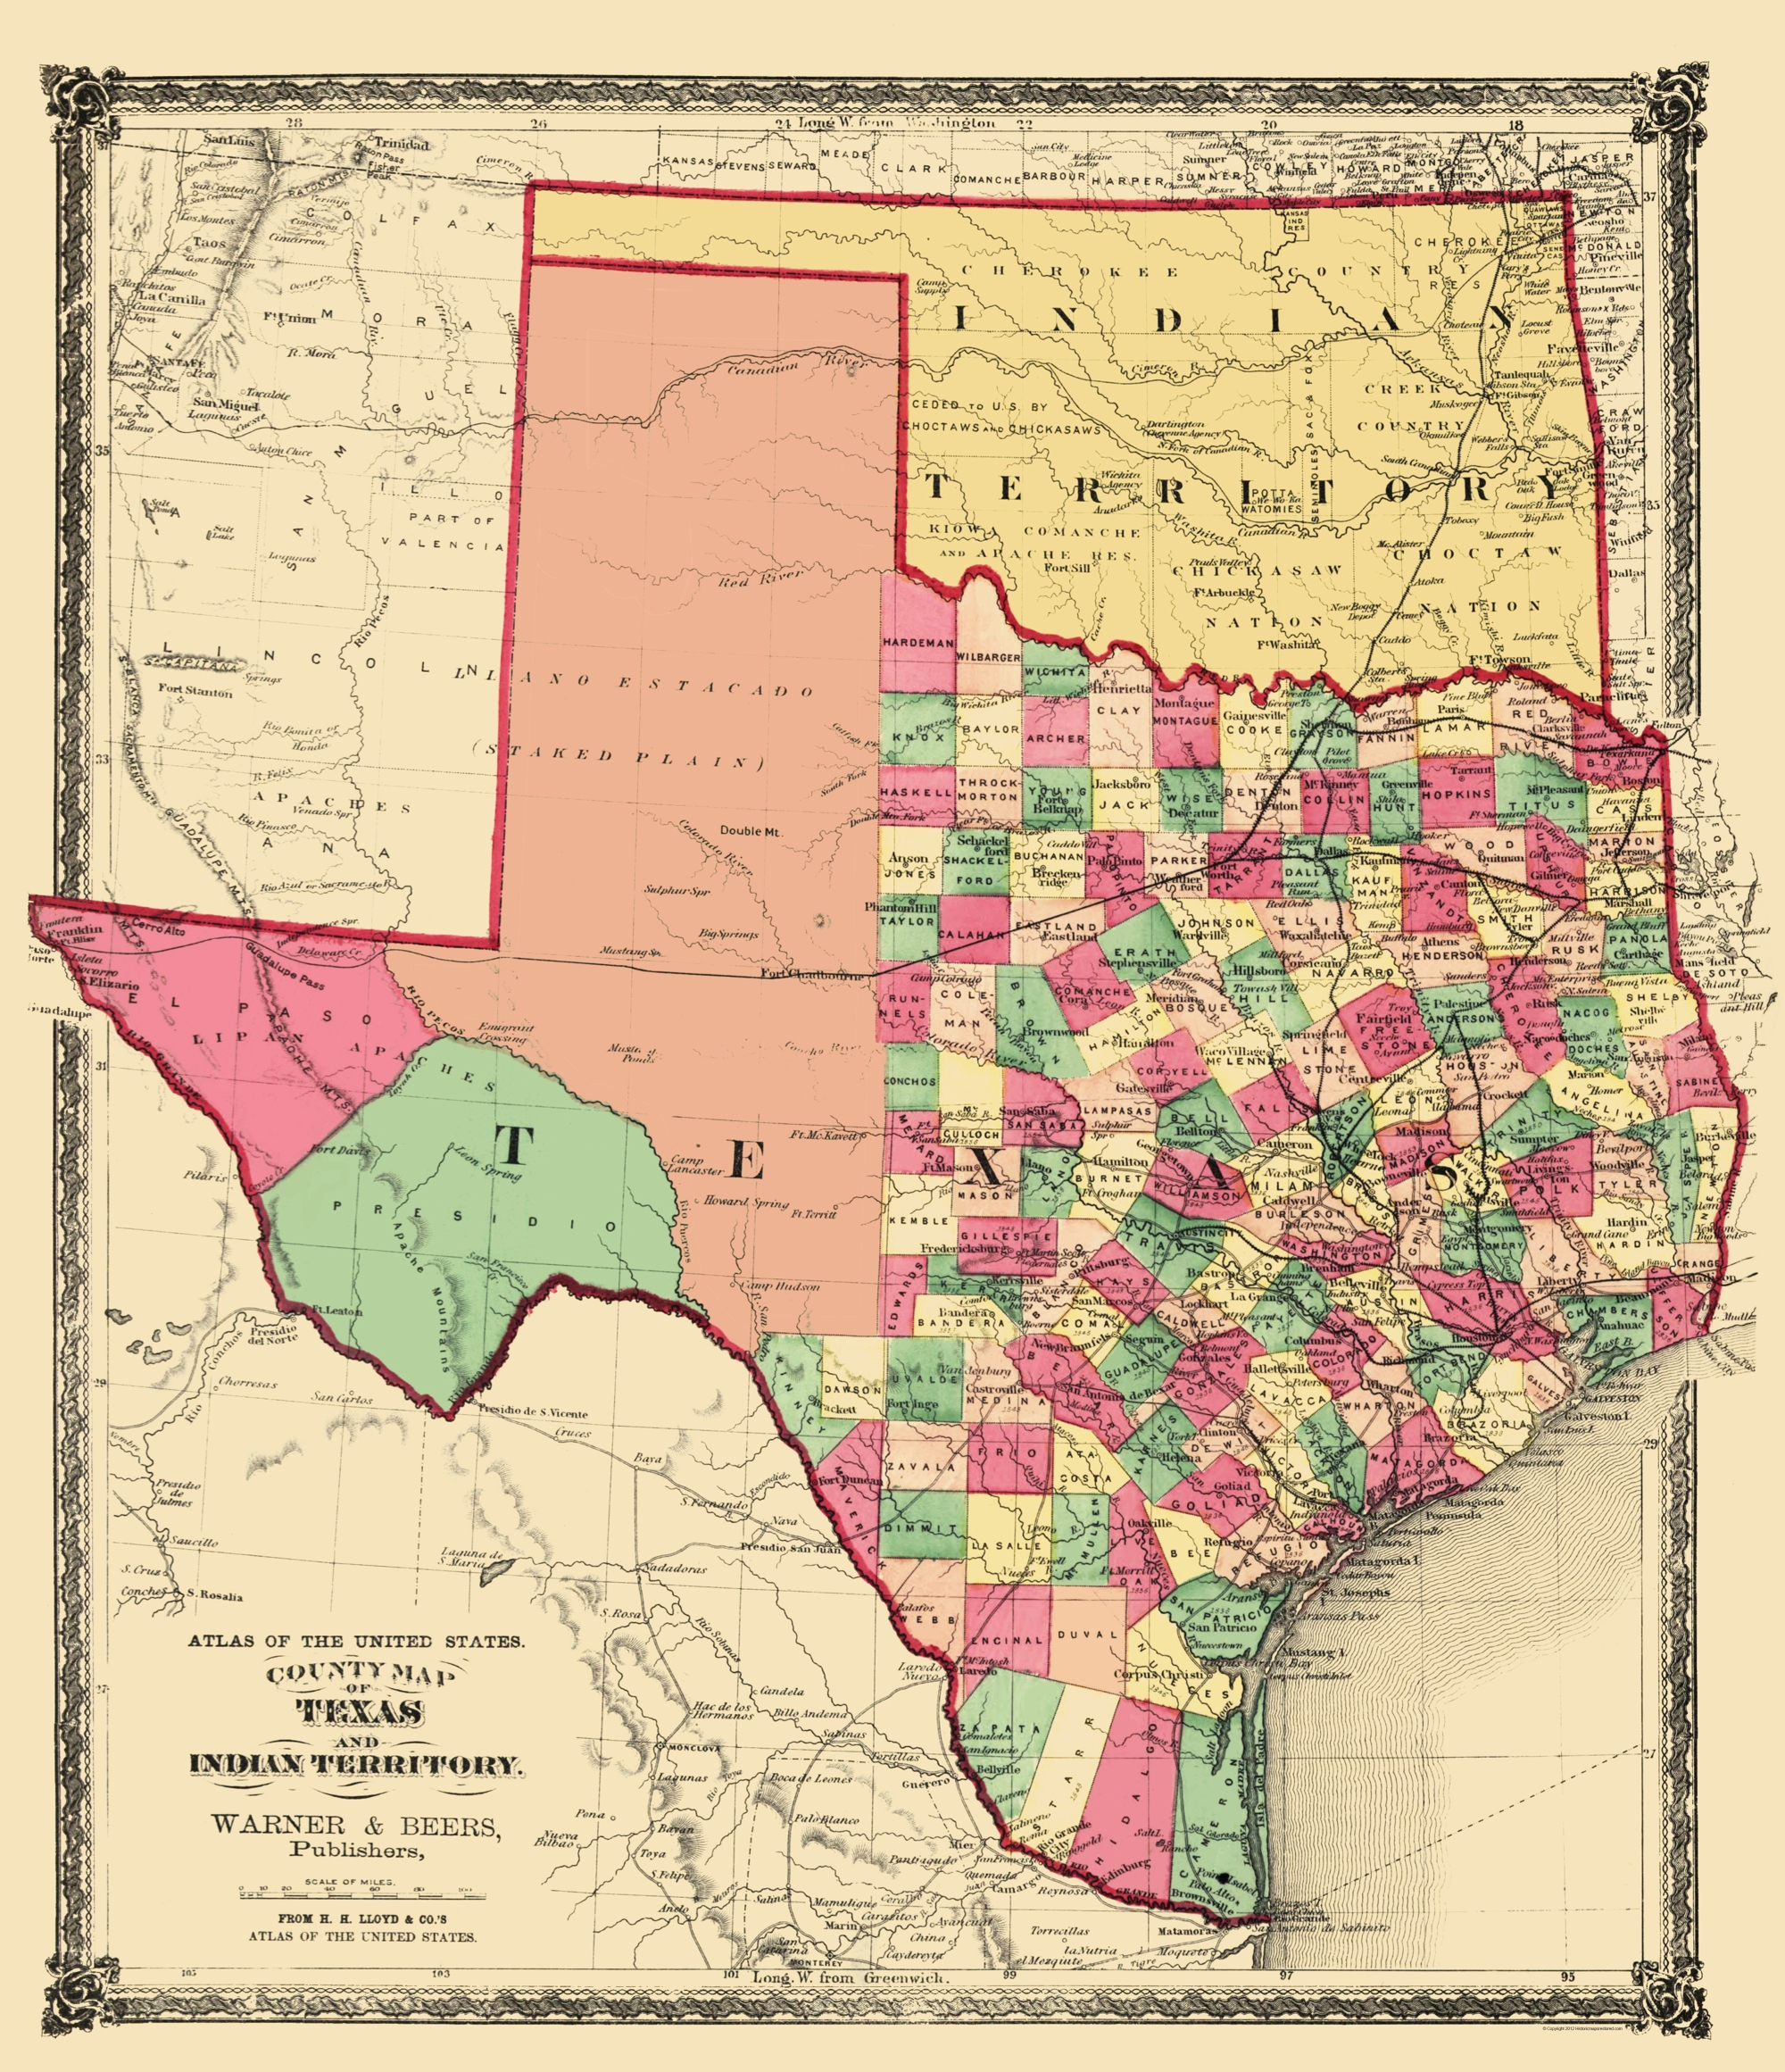 Old State Map - Texas and Indian Territory - Warner and Beers 1876 on map of levelland, map of north dfw, map of giddings, map of del city, map of panola college, map of marinette, map of phoenix mesa, map of telegraph, map of big bend np, map of alliance airport, map of spanish fort, map of fruita, map of ranger college, map of la marque, map of mcculloch county, map of dallas, map of snyder, map of lake bridgeport, map of west columbia, map of liberal,